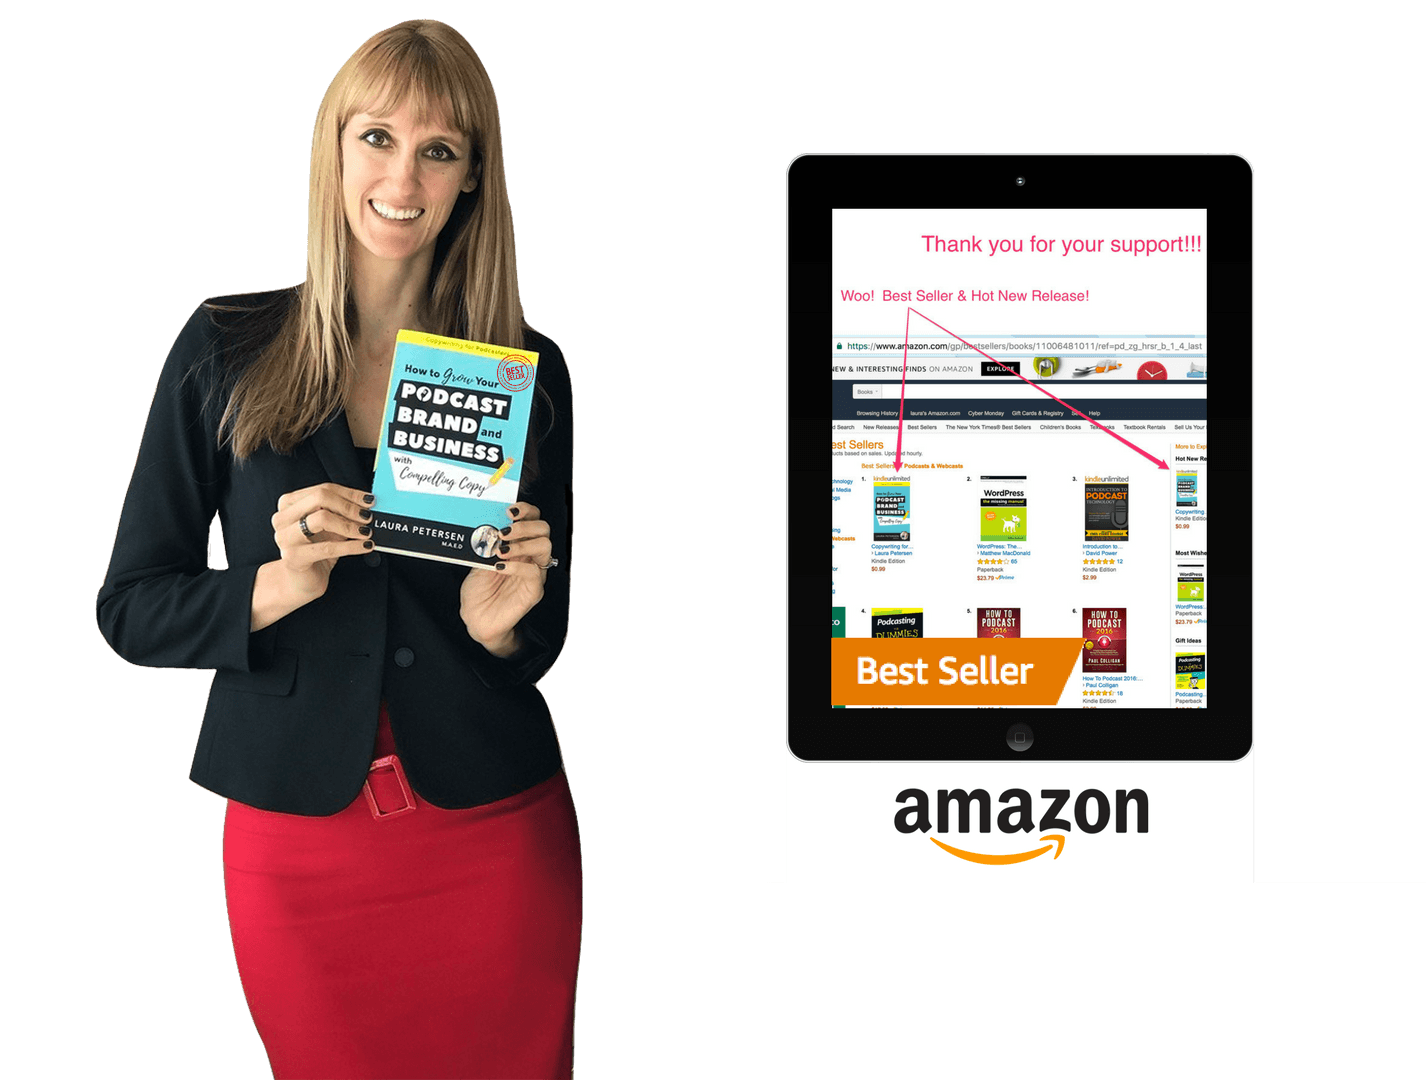 amazon bestseller laptop laura petersen best selling author photo